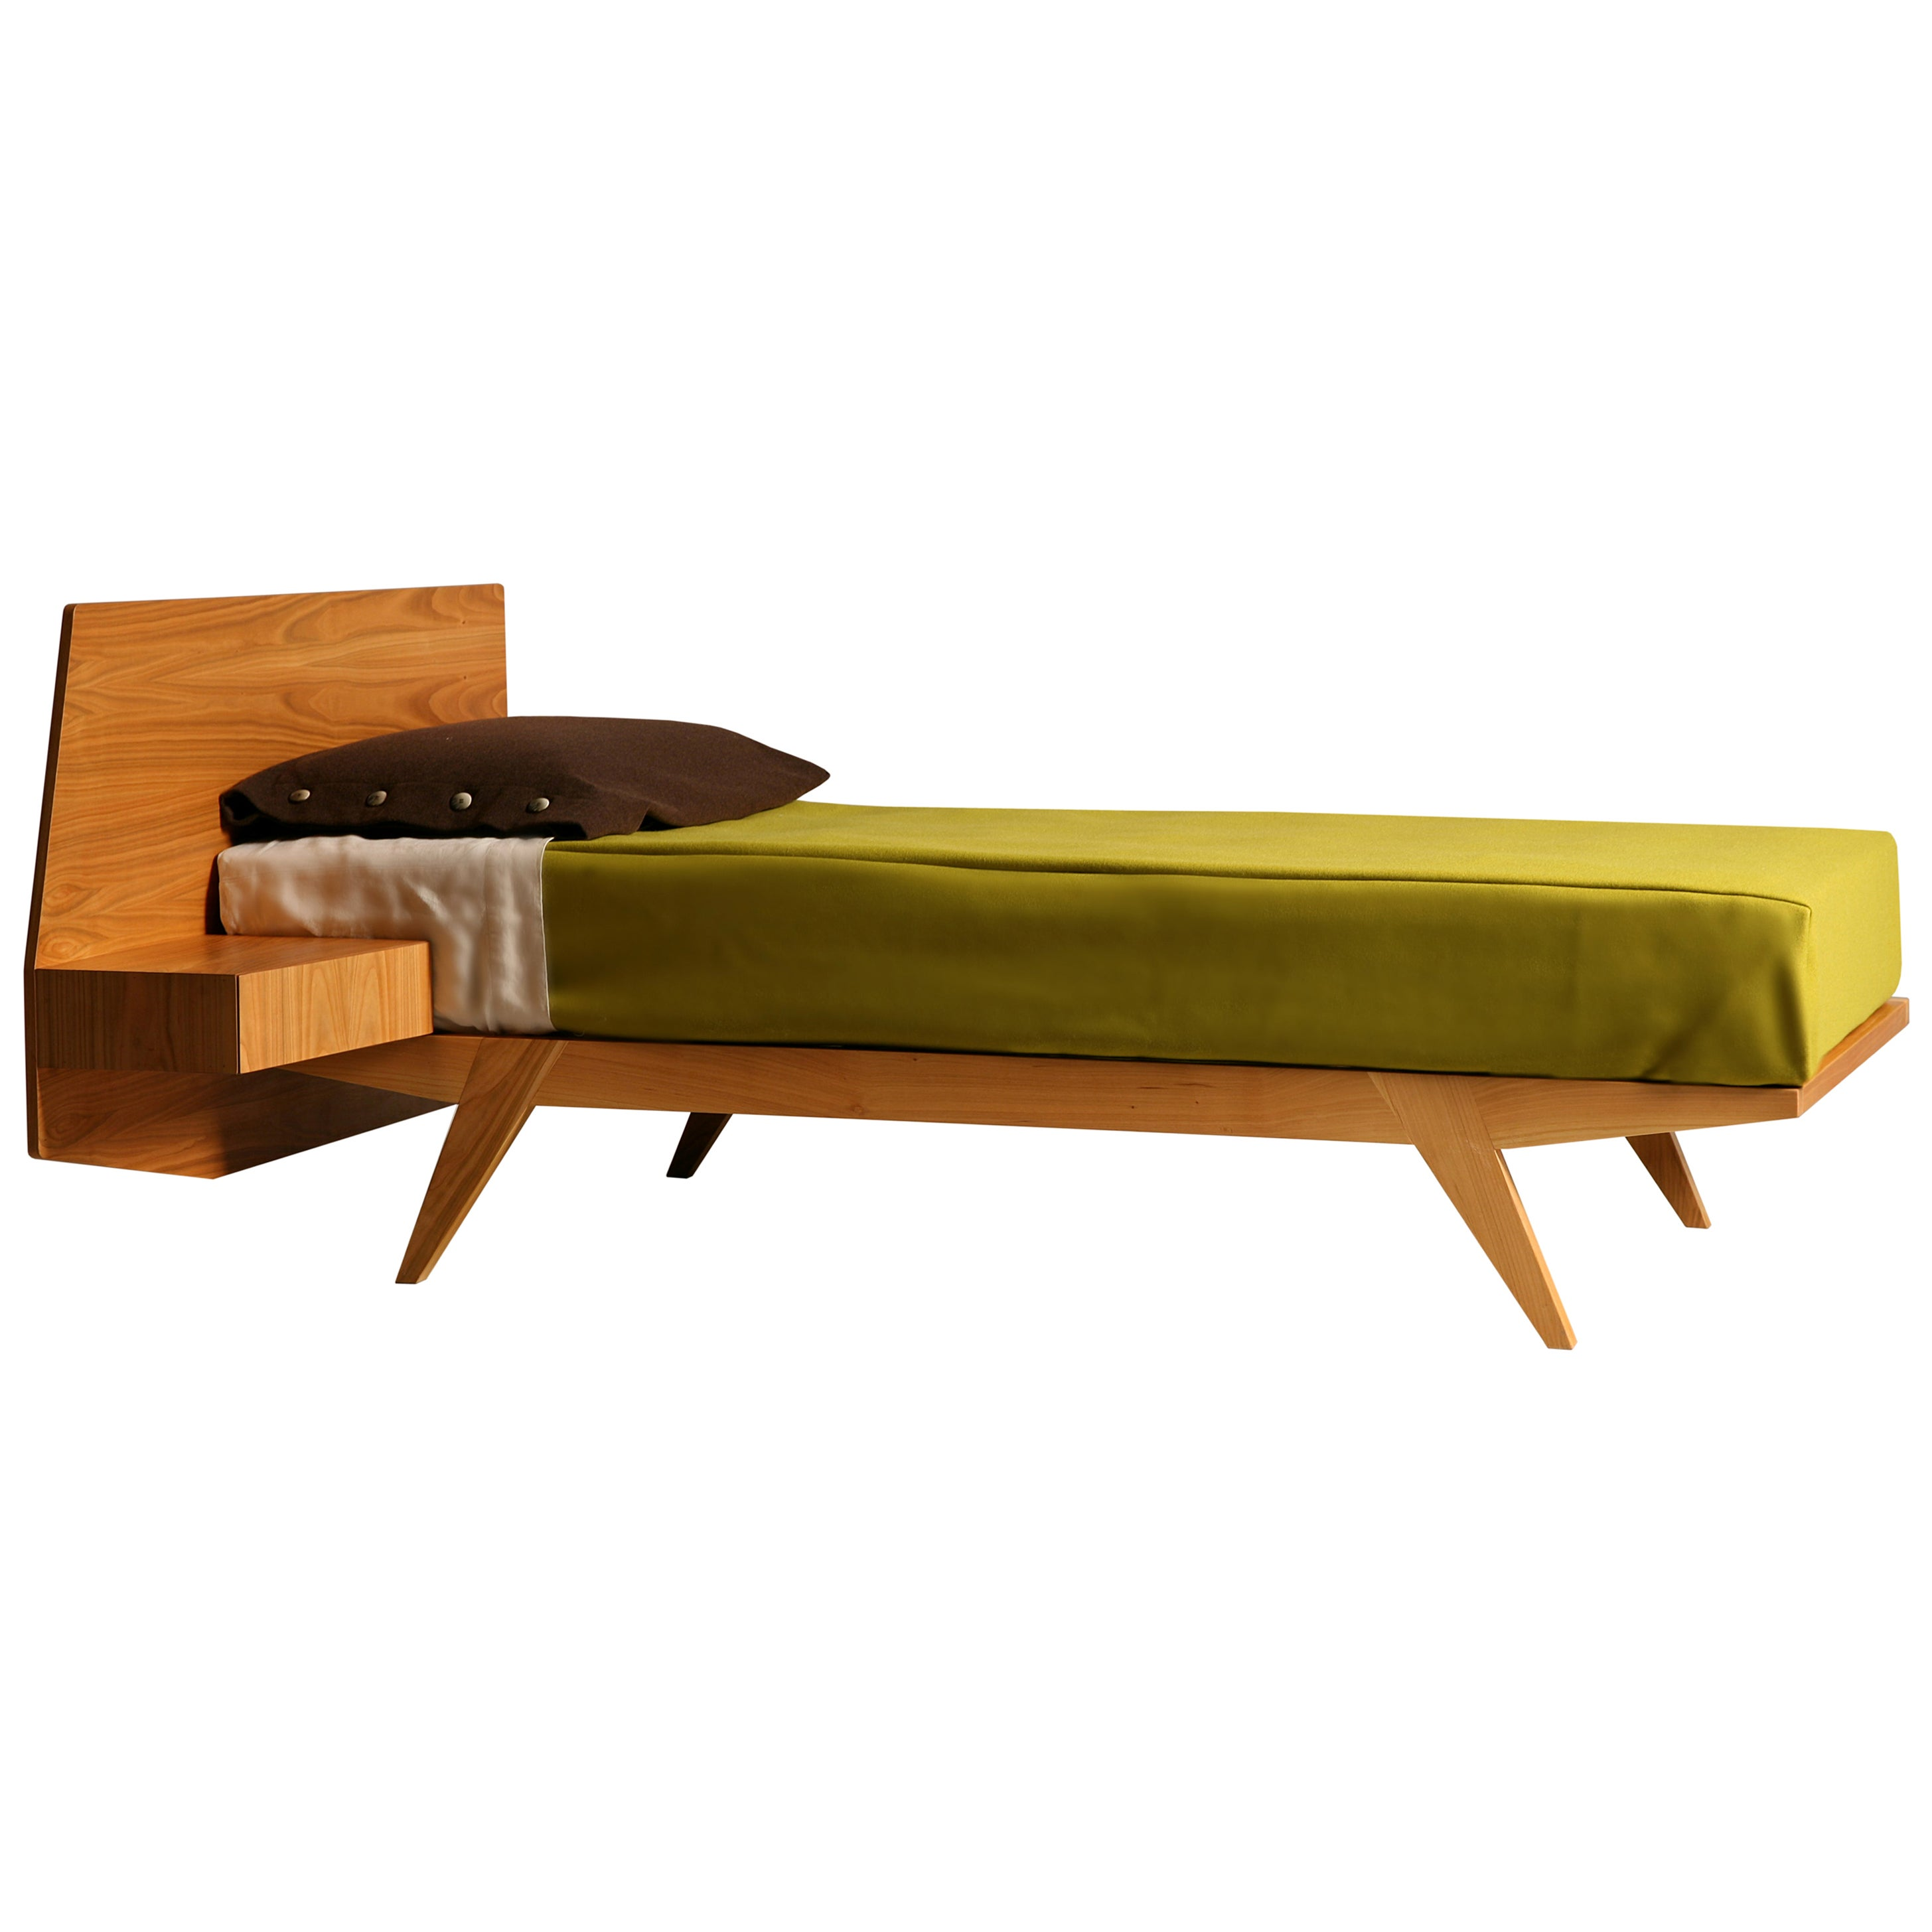 Morelato Gio' Bed, Made of Cherrywood with Drawer on Headboard